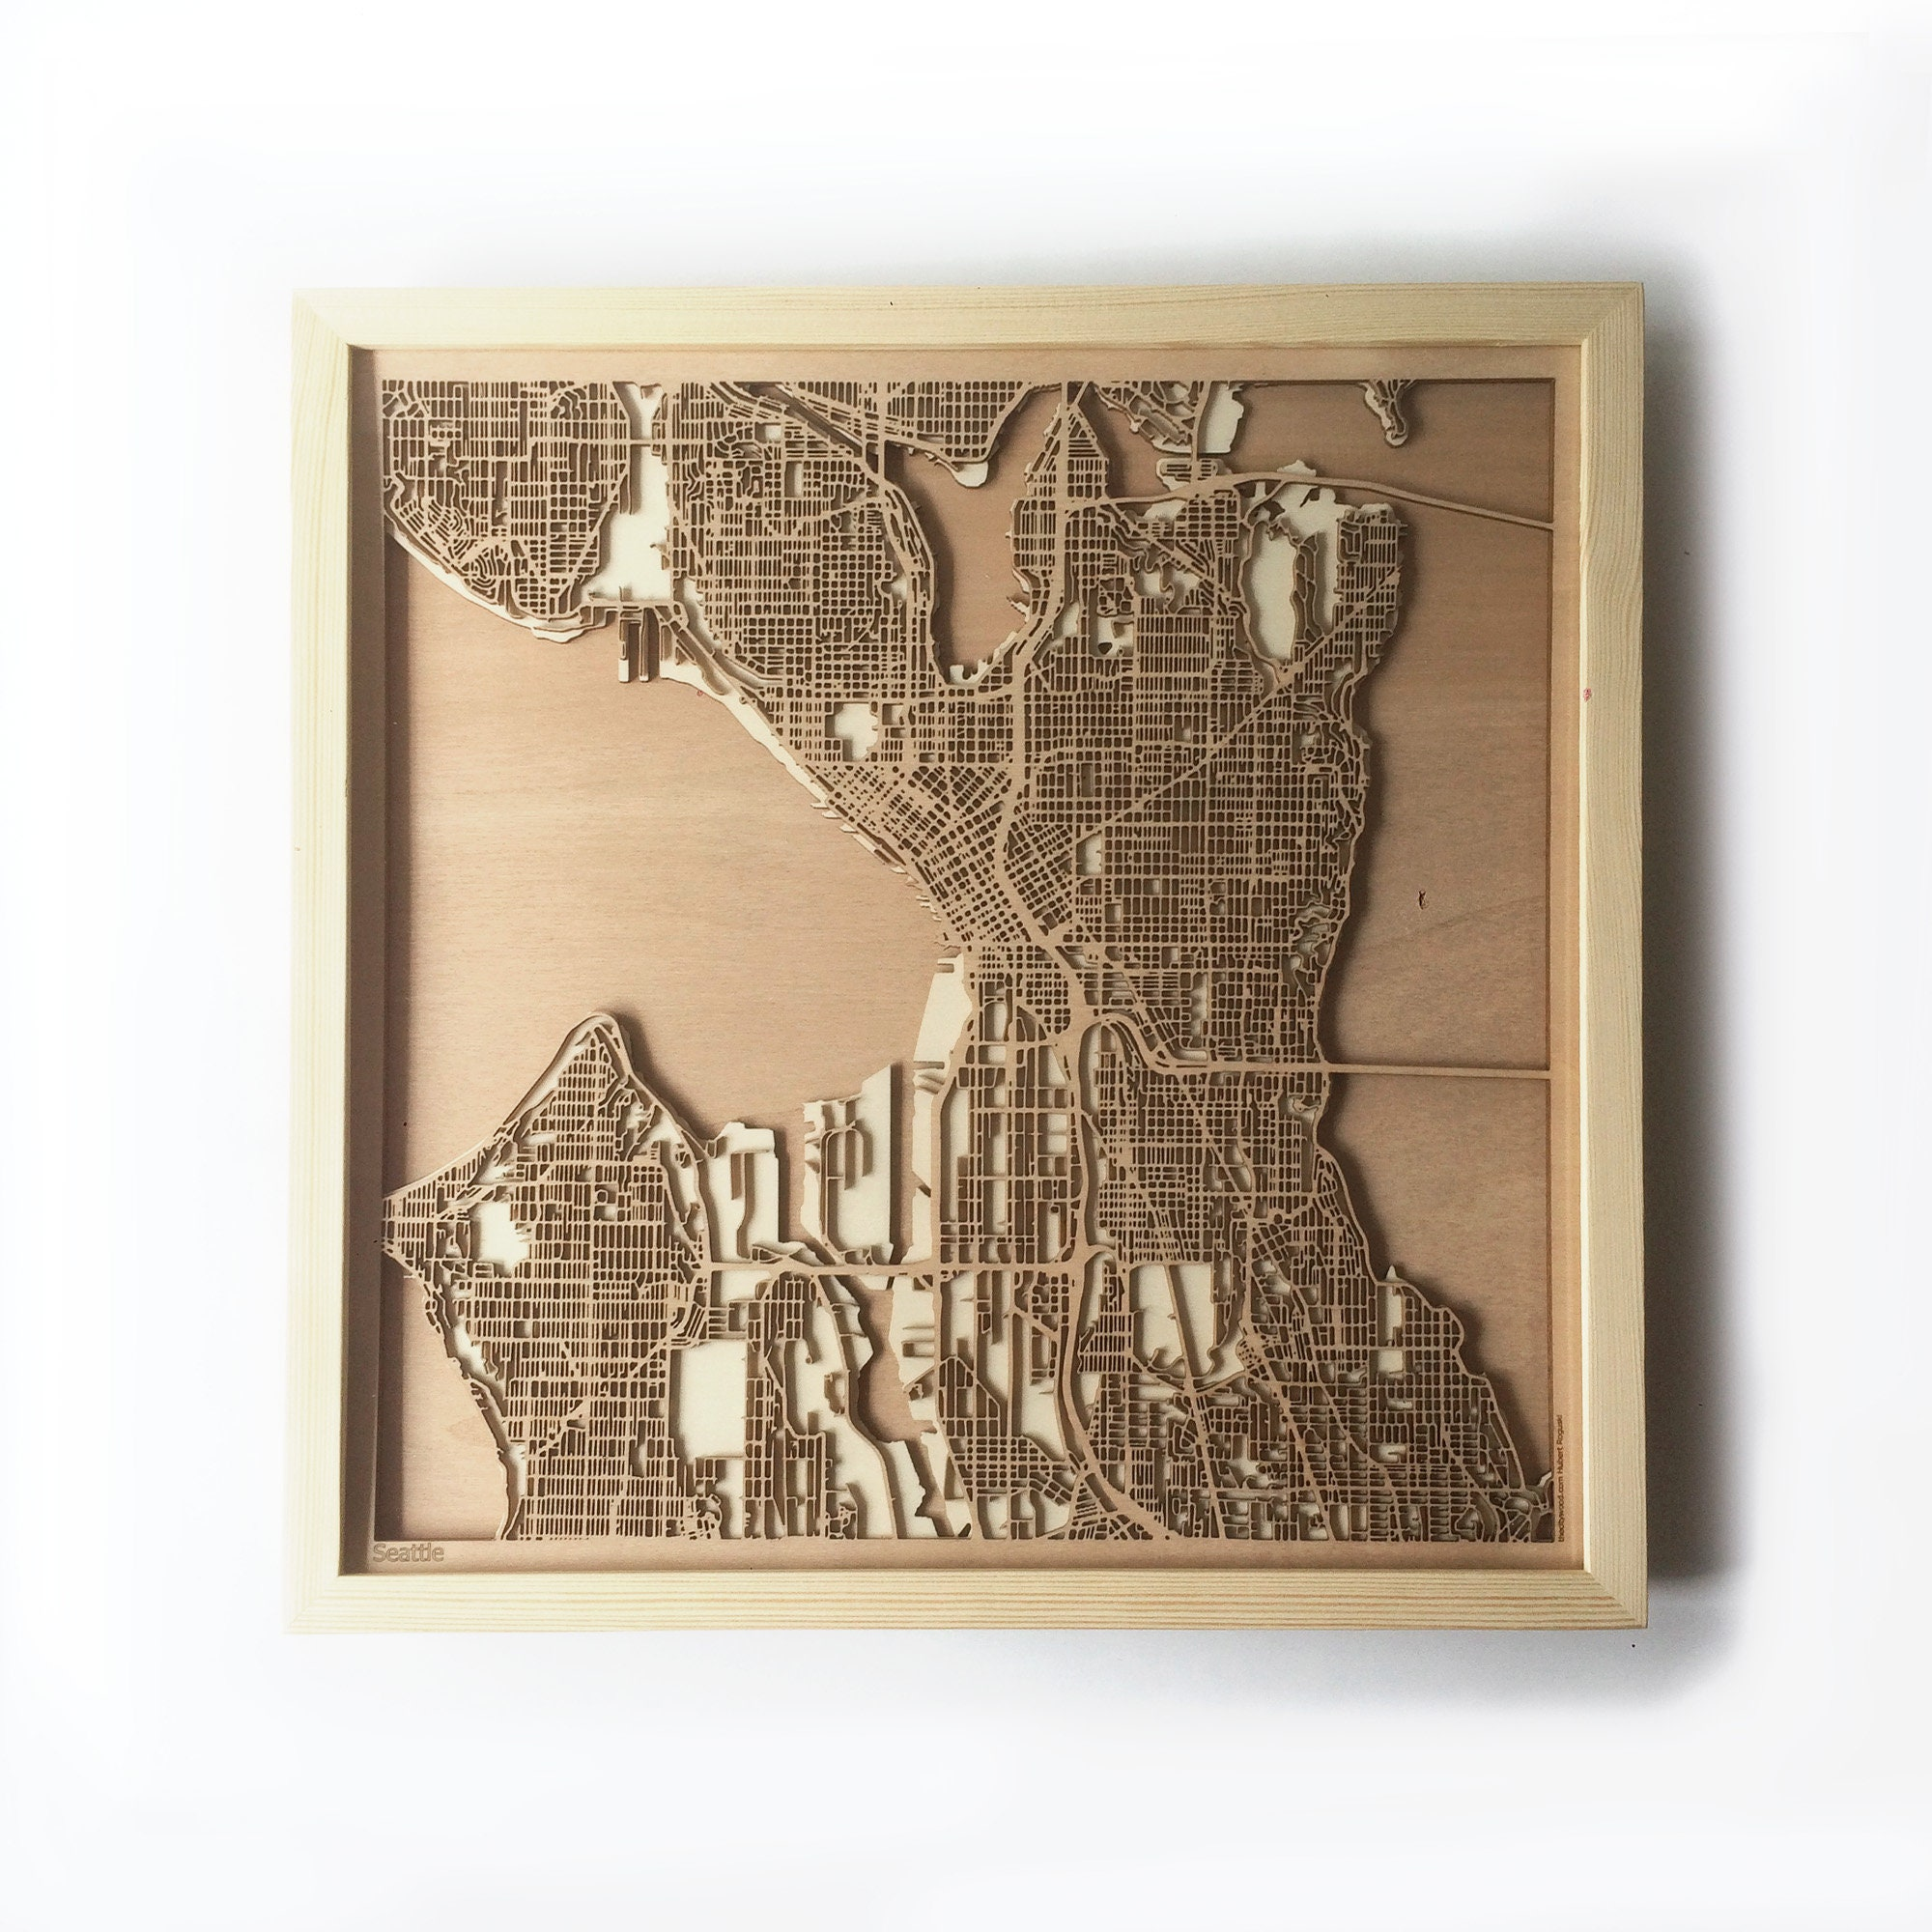 Seattle Wooden Map Pinewood Laser Cut Wood Streets City Maps 3d